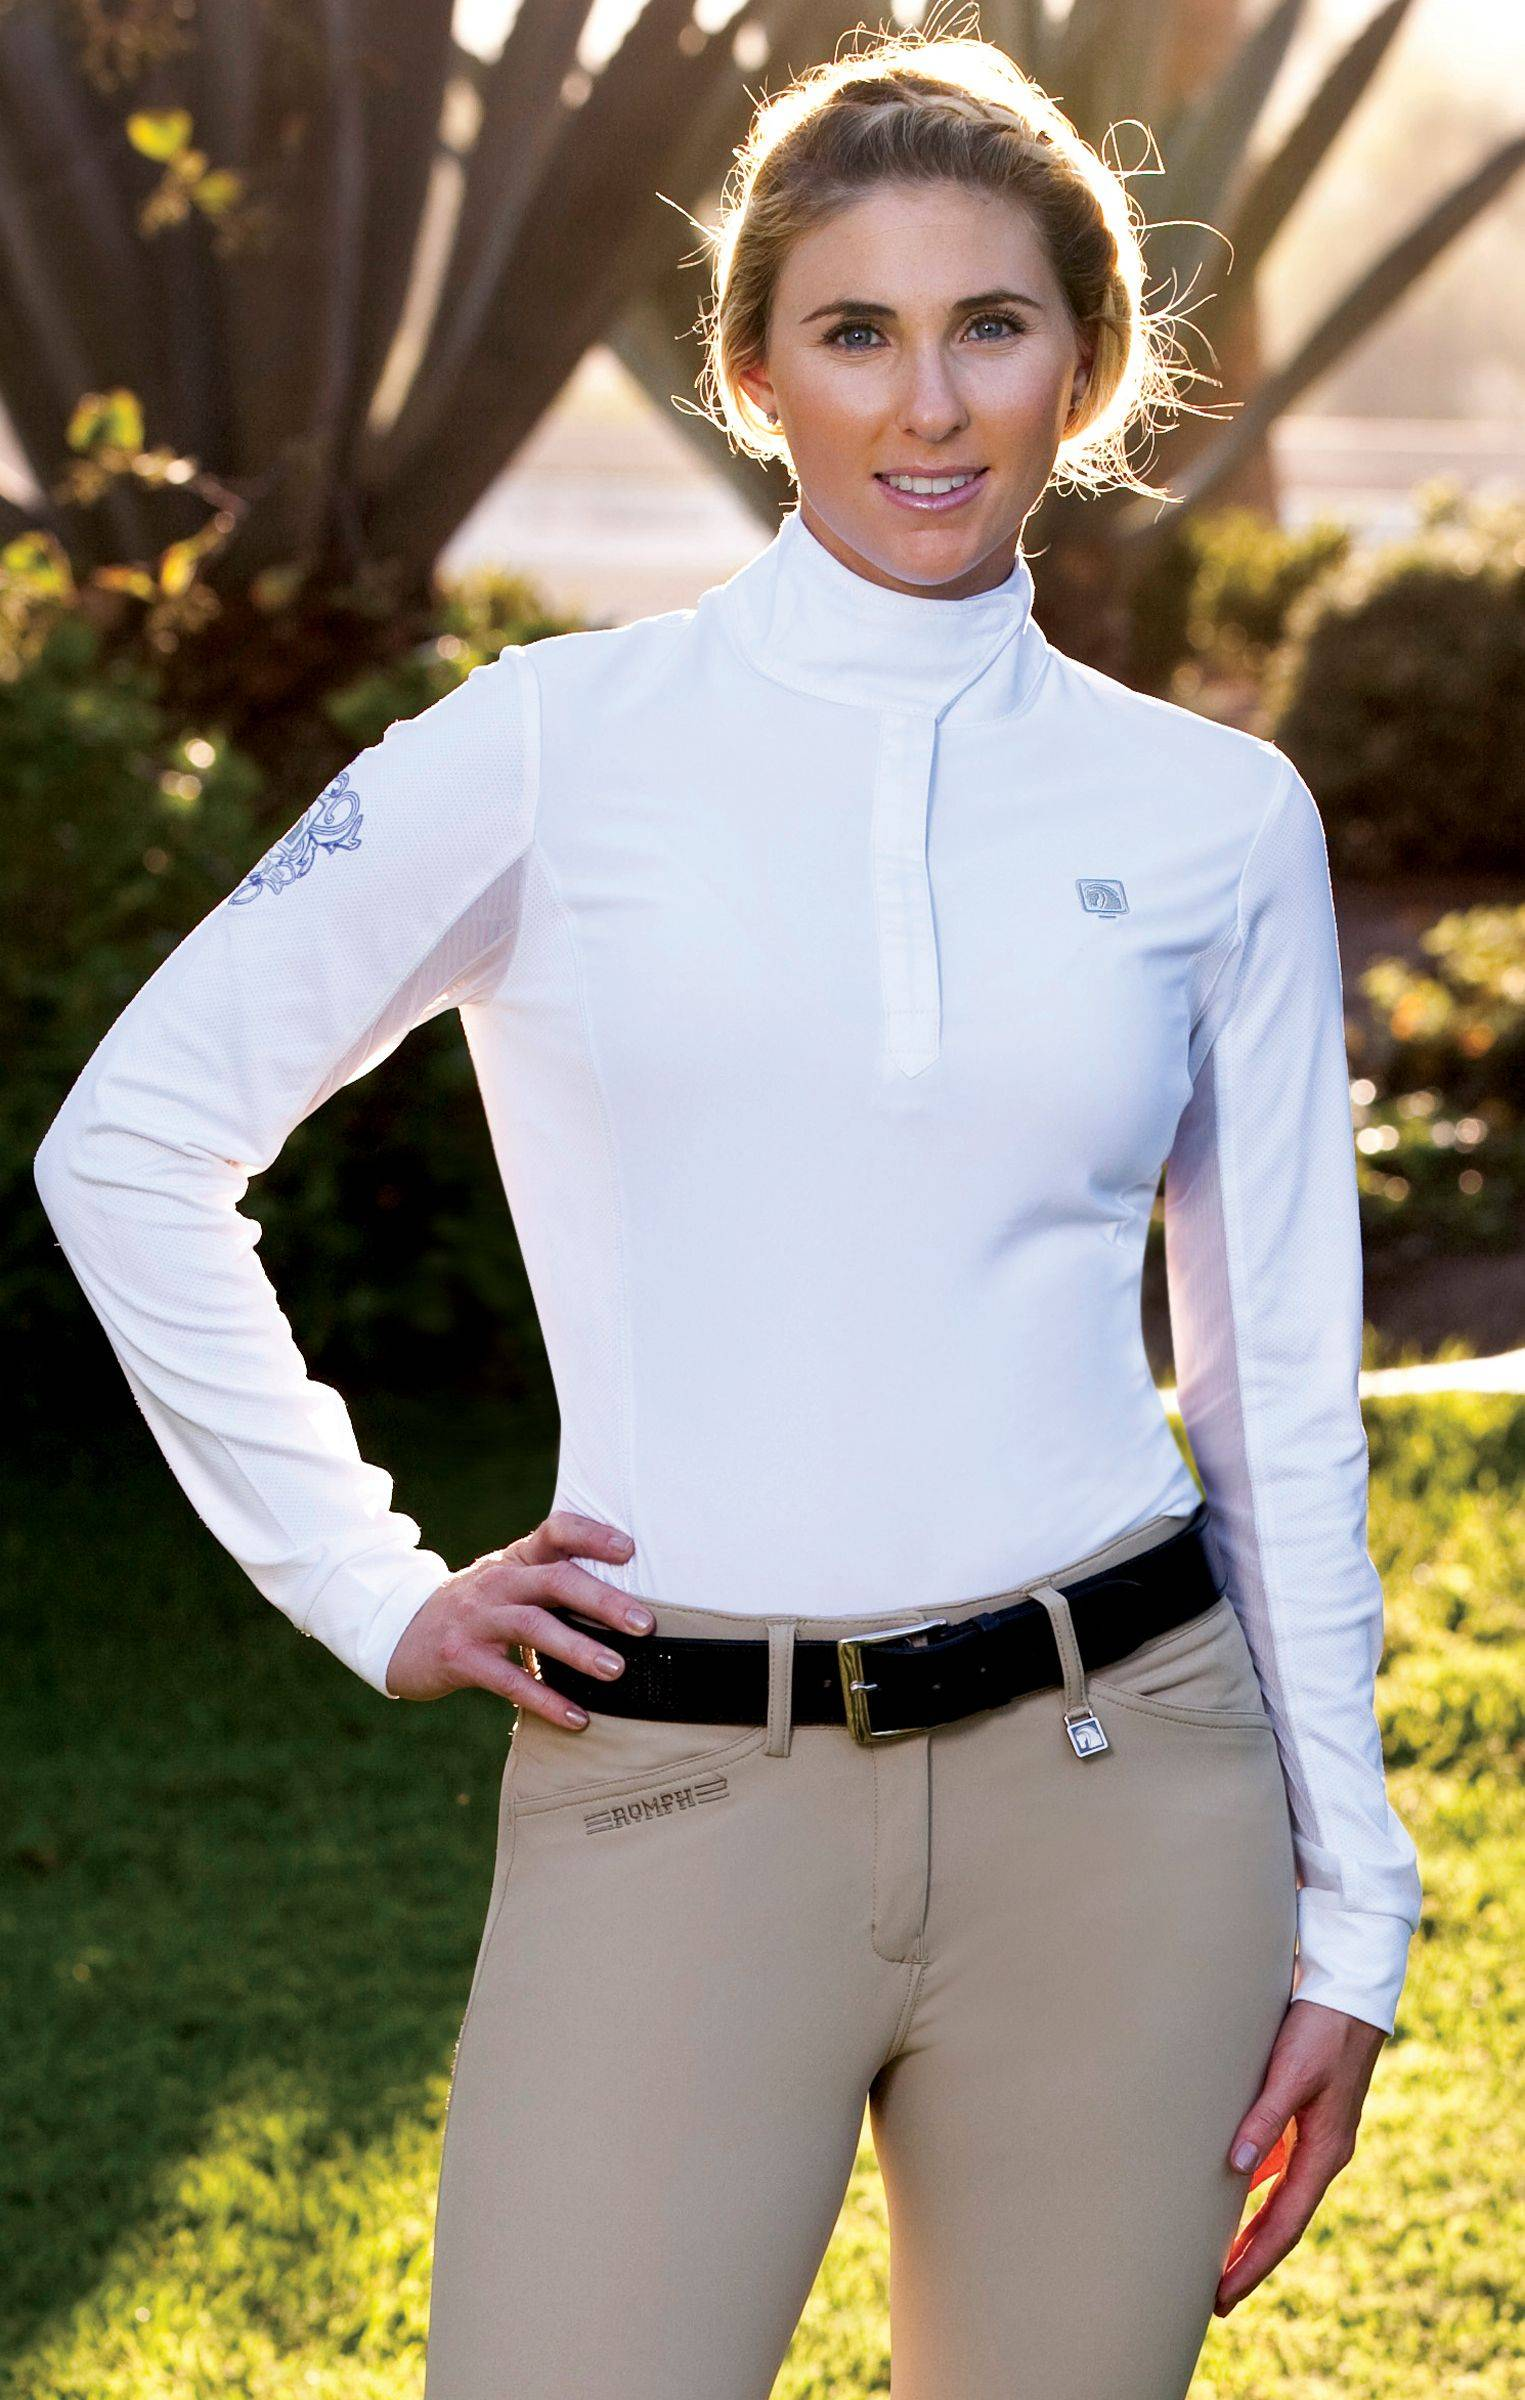 Romfh Ladies Competitor Long Sleeve Show Shirt